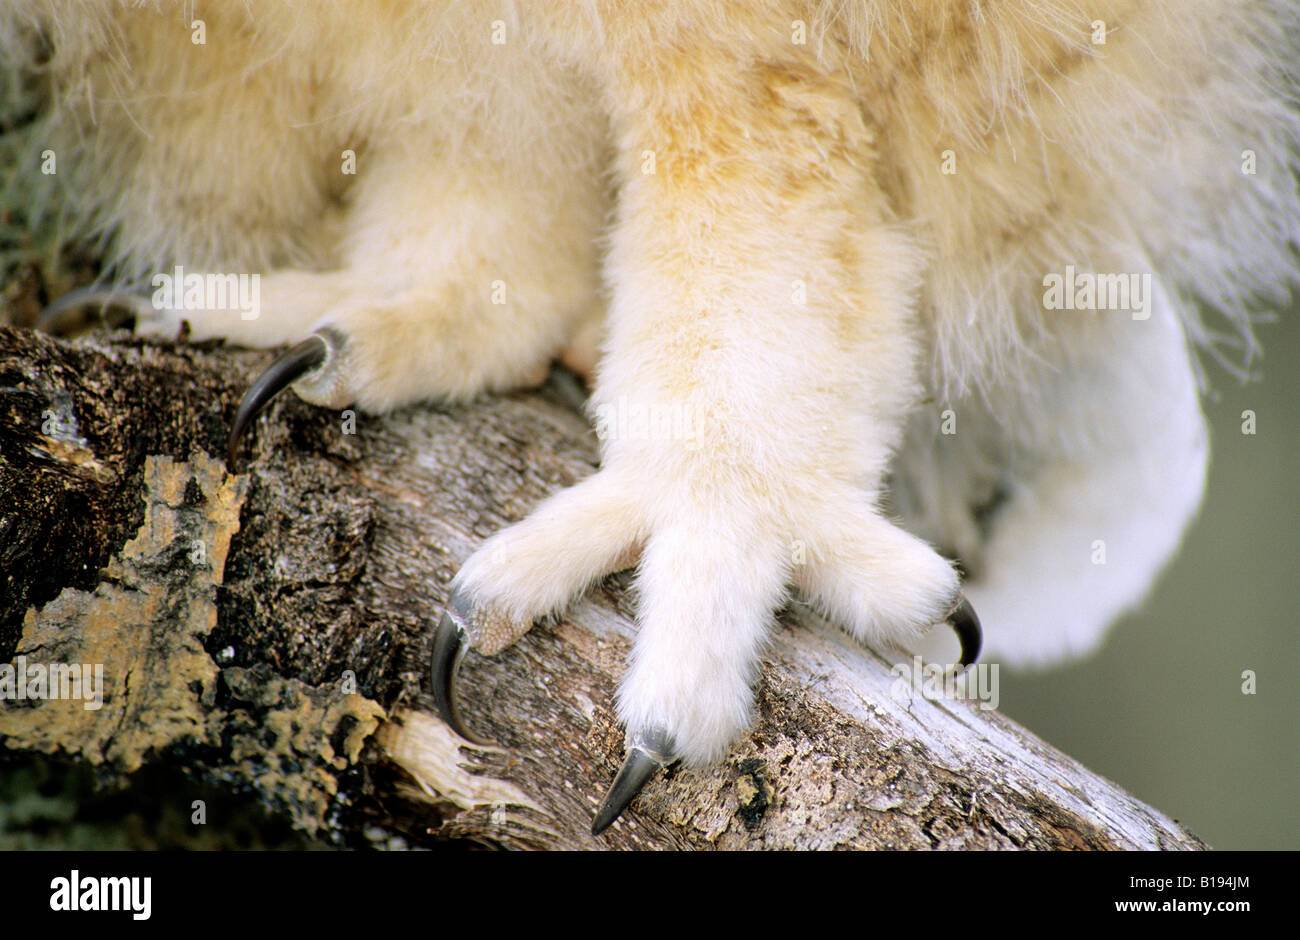 Foot & talons of a six-week old great horned owl chick (Bubo virginianus), southern Alberta, Canada - Stock Image